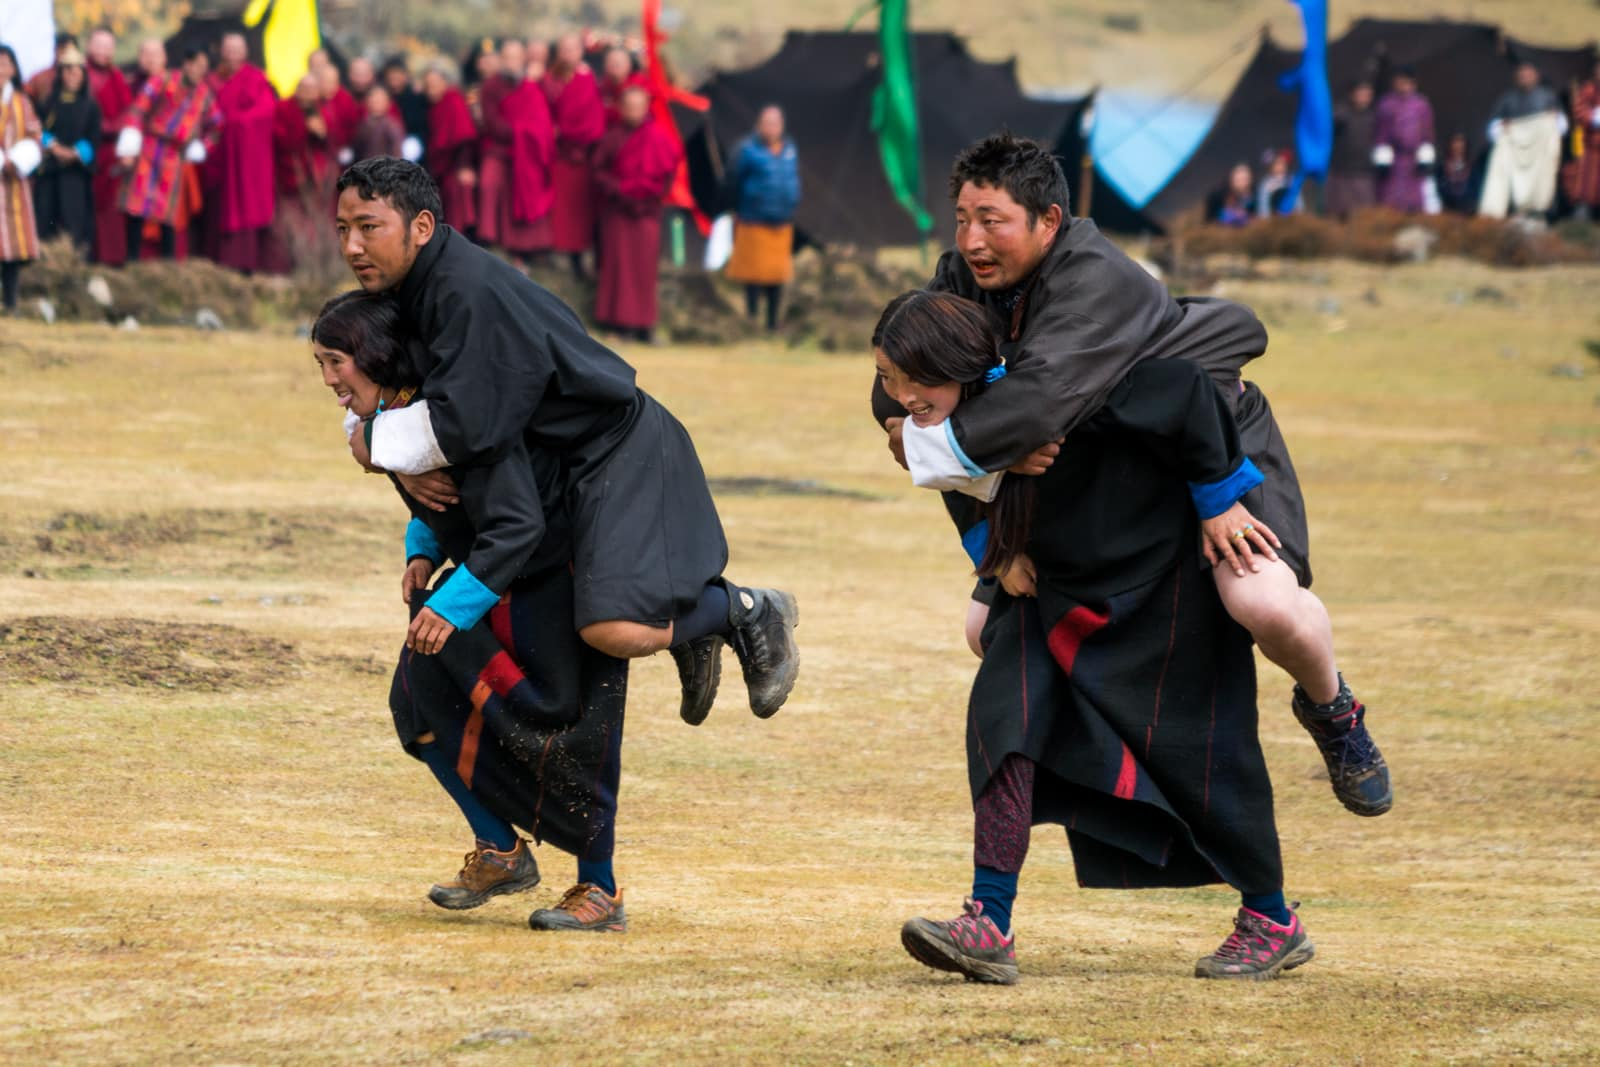 Photos of the 2017 Royal Highlander Festival - Girls carrying boys in a relay race at the Royal Highlander Festival - Lost With Purpose travel blog